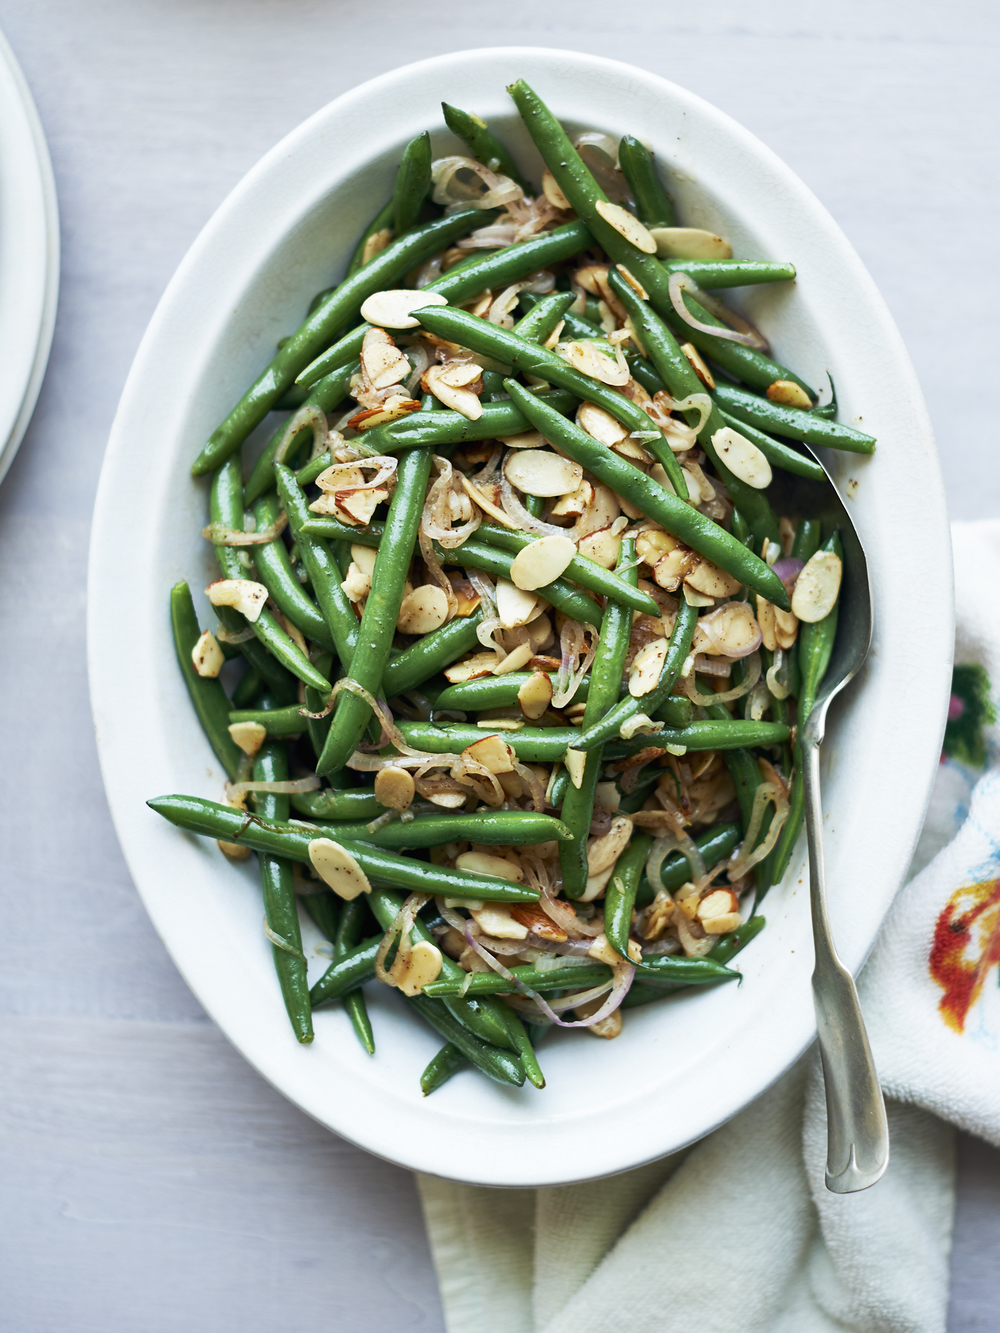 CH-07_Green_Beans_with_Toasted_Almonds_1142.jpg